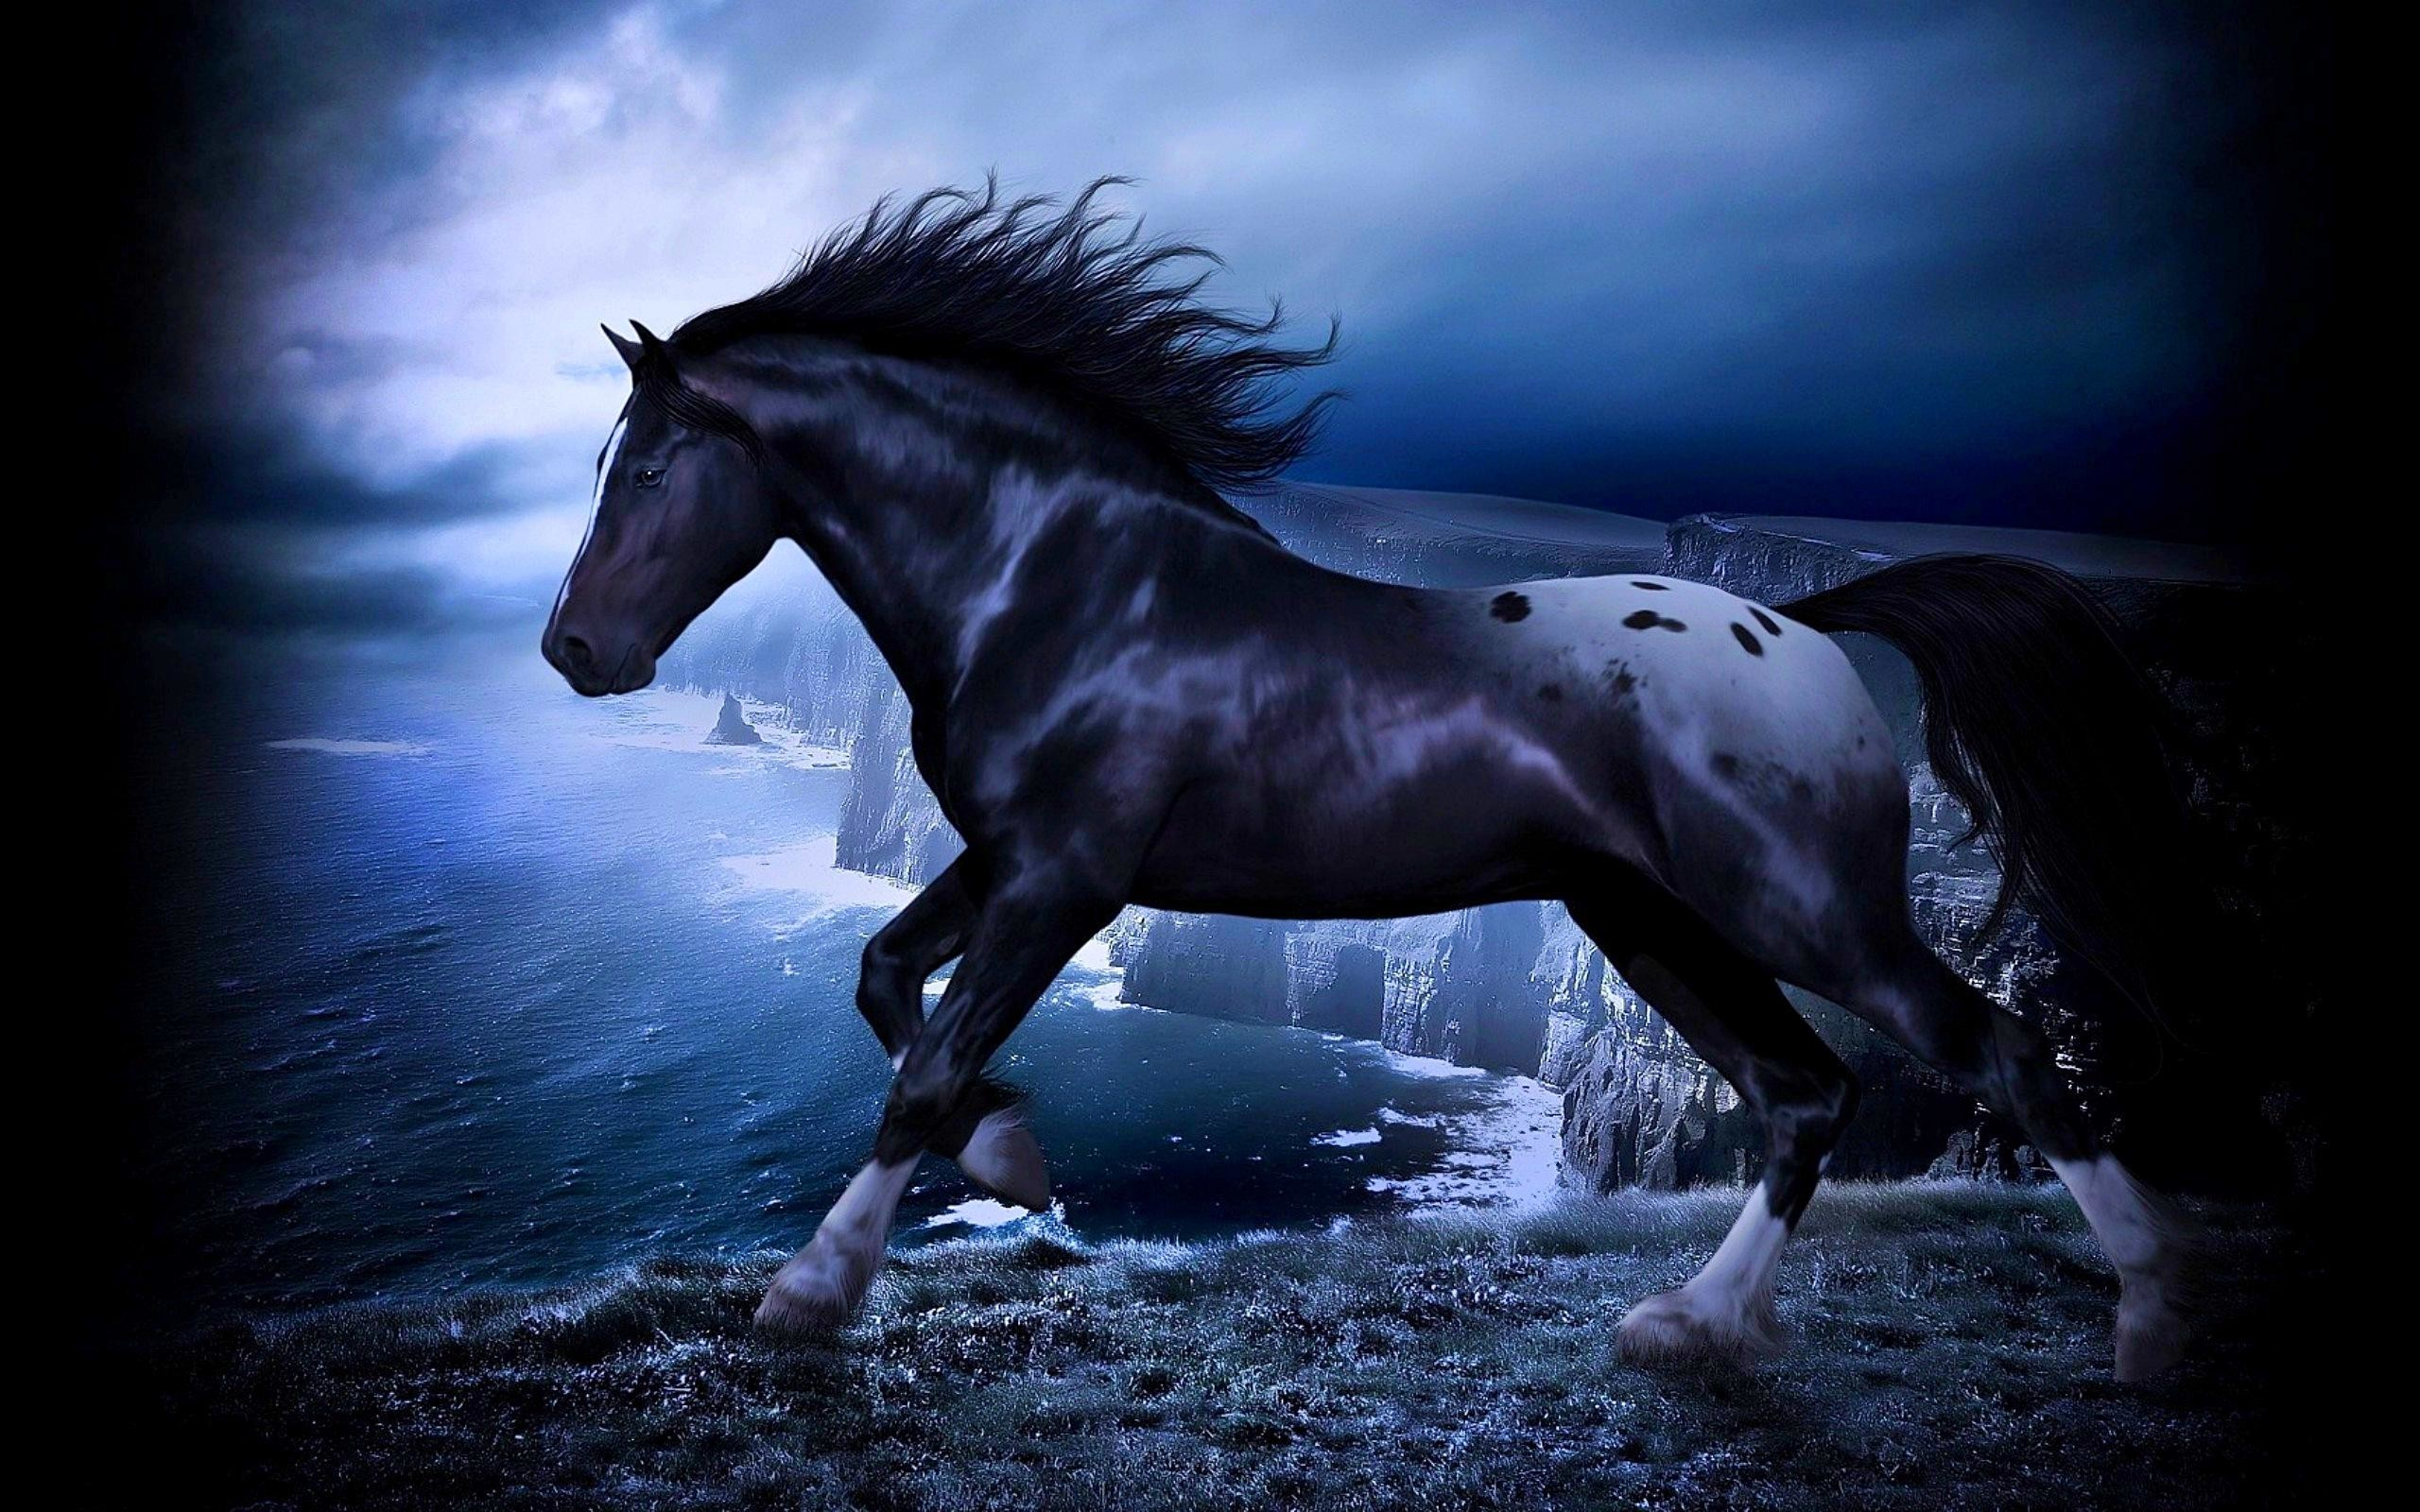 Free Download Black Horse Image Wallpapers Collection 2560x1600 For Your Desktop Mobile Tablet Explore 37 Blackhorse Wallpaper Blackhorse Wallpaper